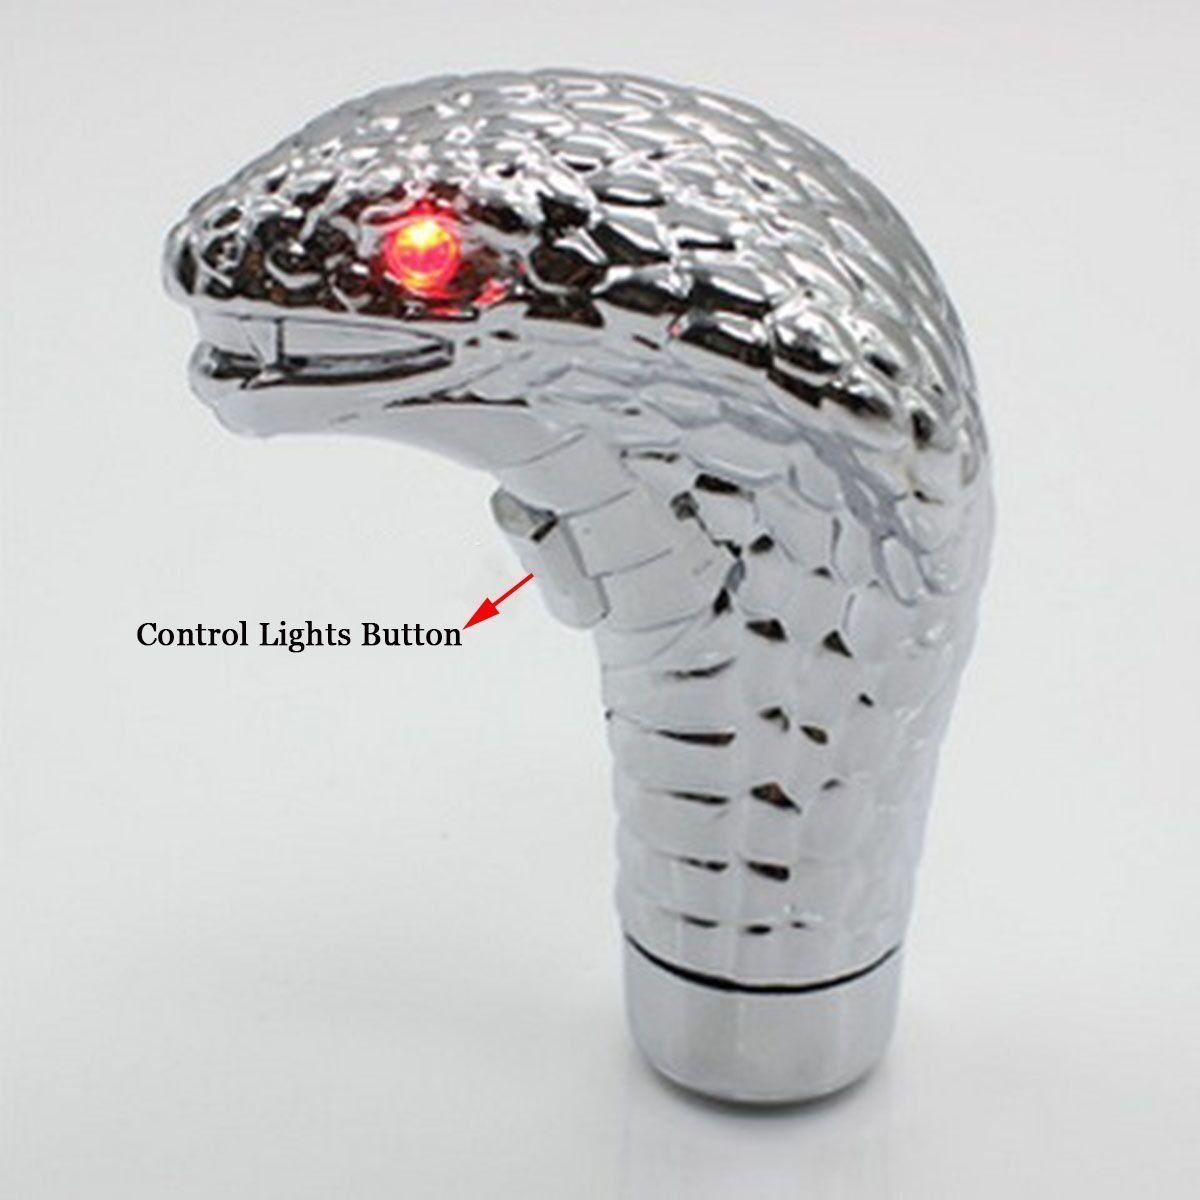 Big Ant Car Cobra Head Gear Shift Knob,Touch Activated Ultra Red Eye LED Light,Handle Shifter Manual//Automatic Gear Shifting Knob Fits Most Cars